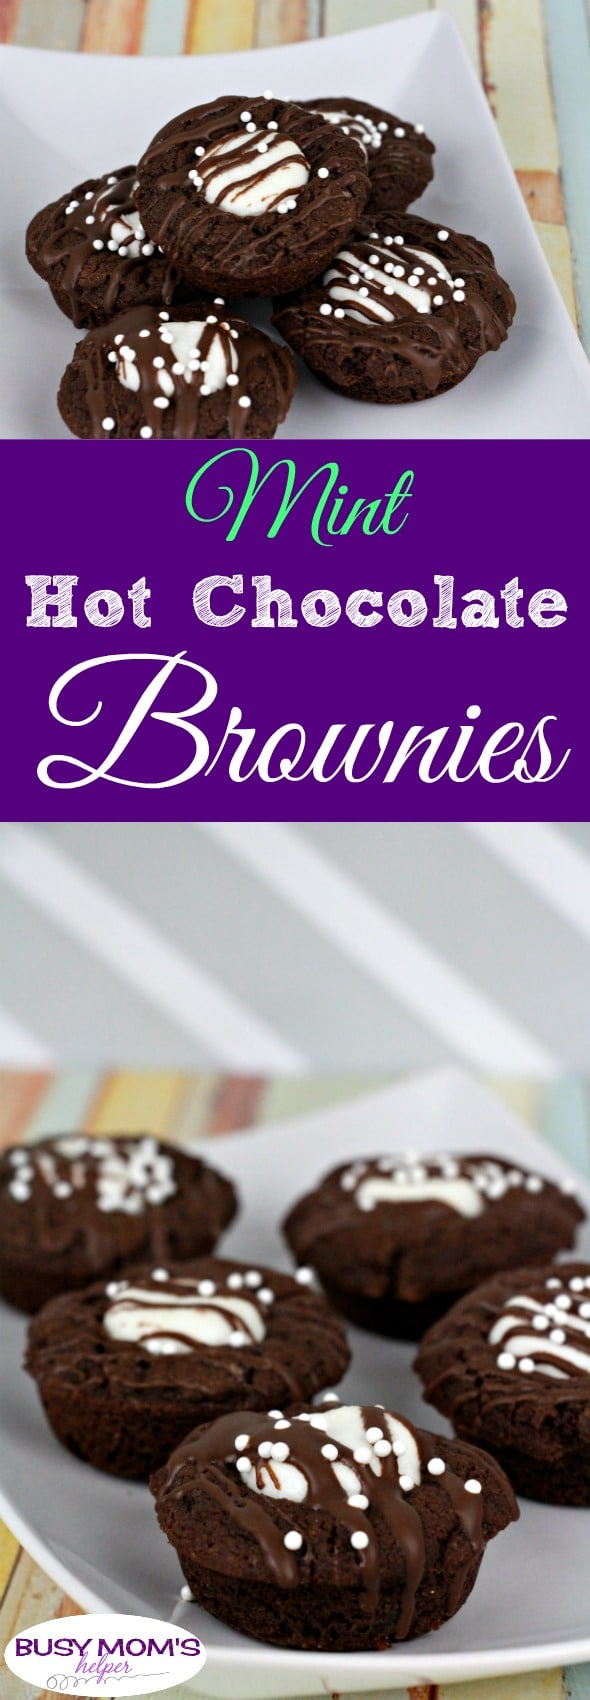 Mint Hot Chocolate Brownies #recipe #brownies #hotchocolate #hotchocolatebrownie #mintbrownie #minthotchocolate #minthotcocoa #hotcocoa #dessert #chocolate